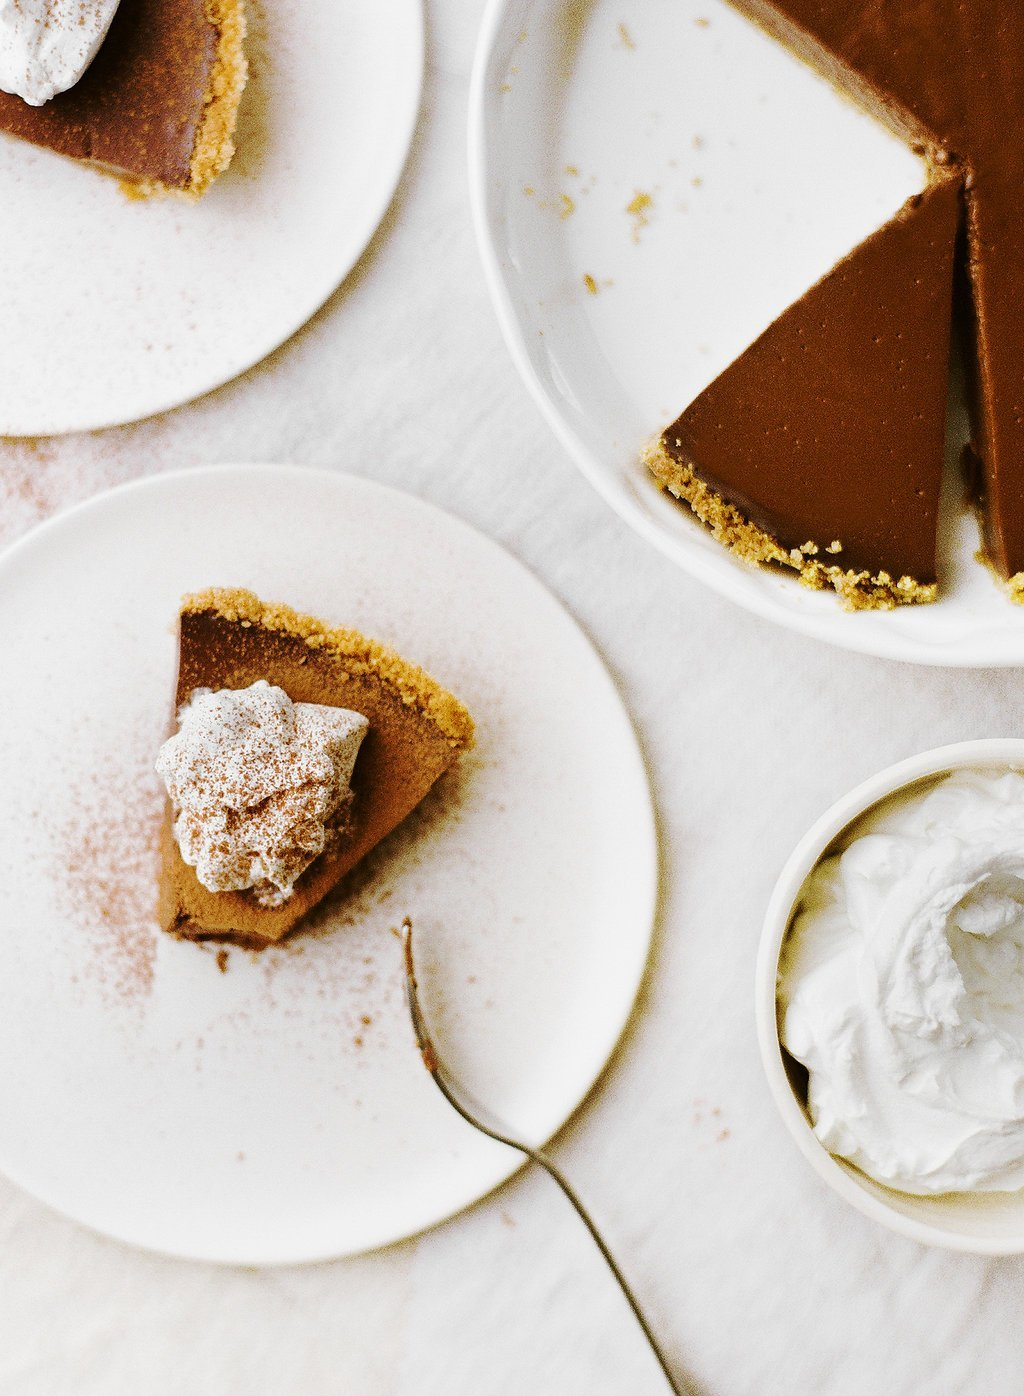 One of my all-time favorites, this Chocolate Pudding Pie features a graham cracker crust, rich double chocolate pudding filling, and whipped cream on top!